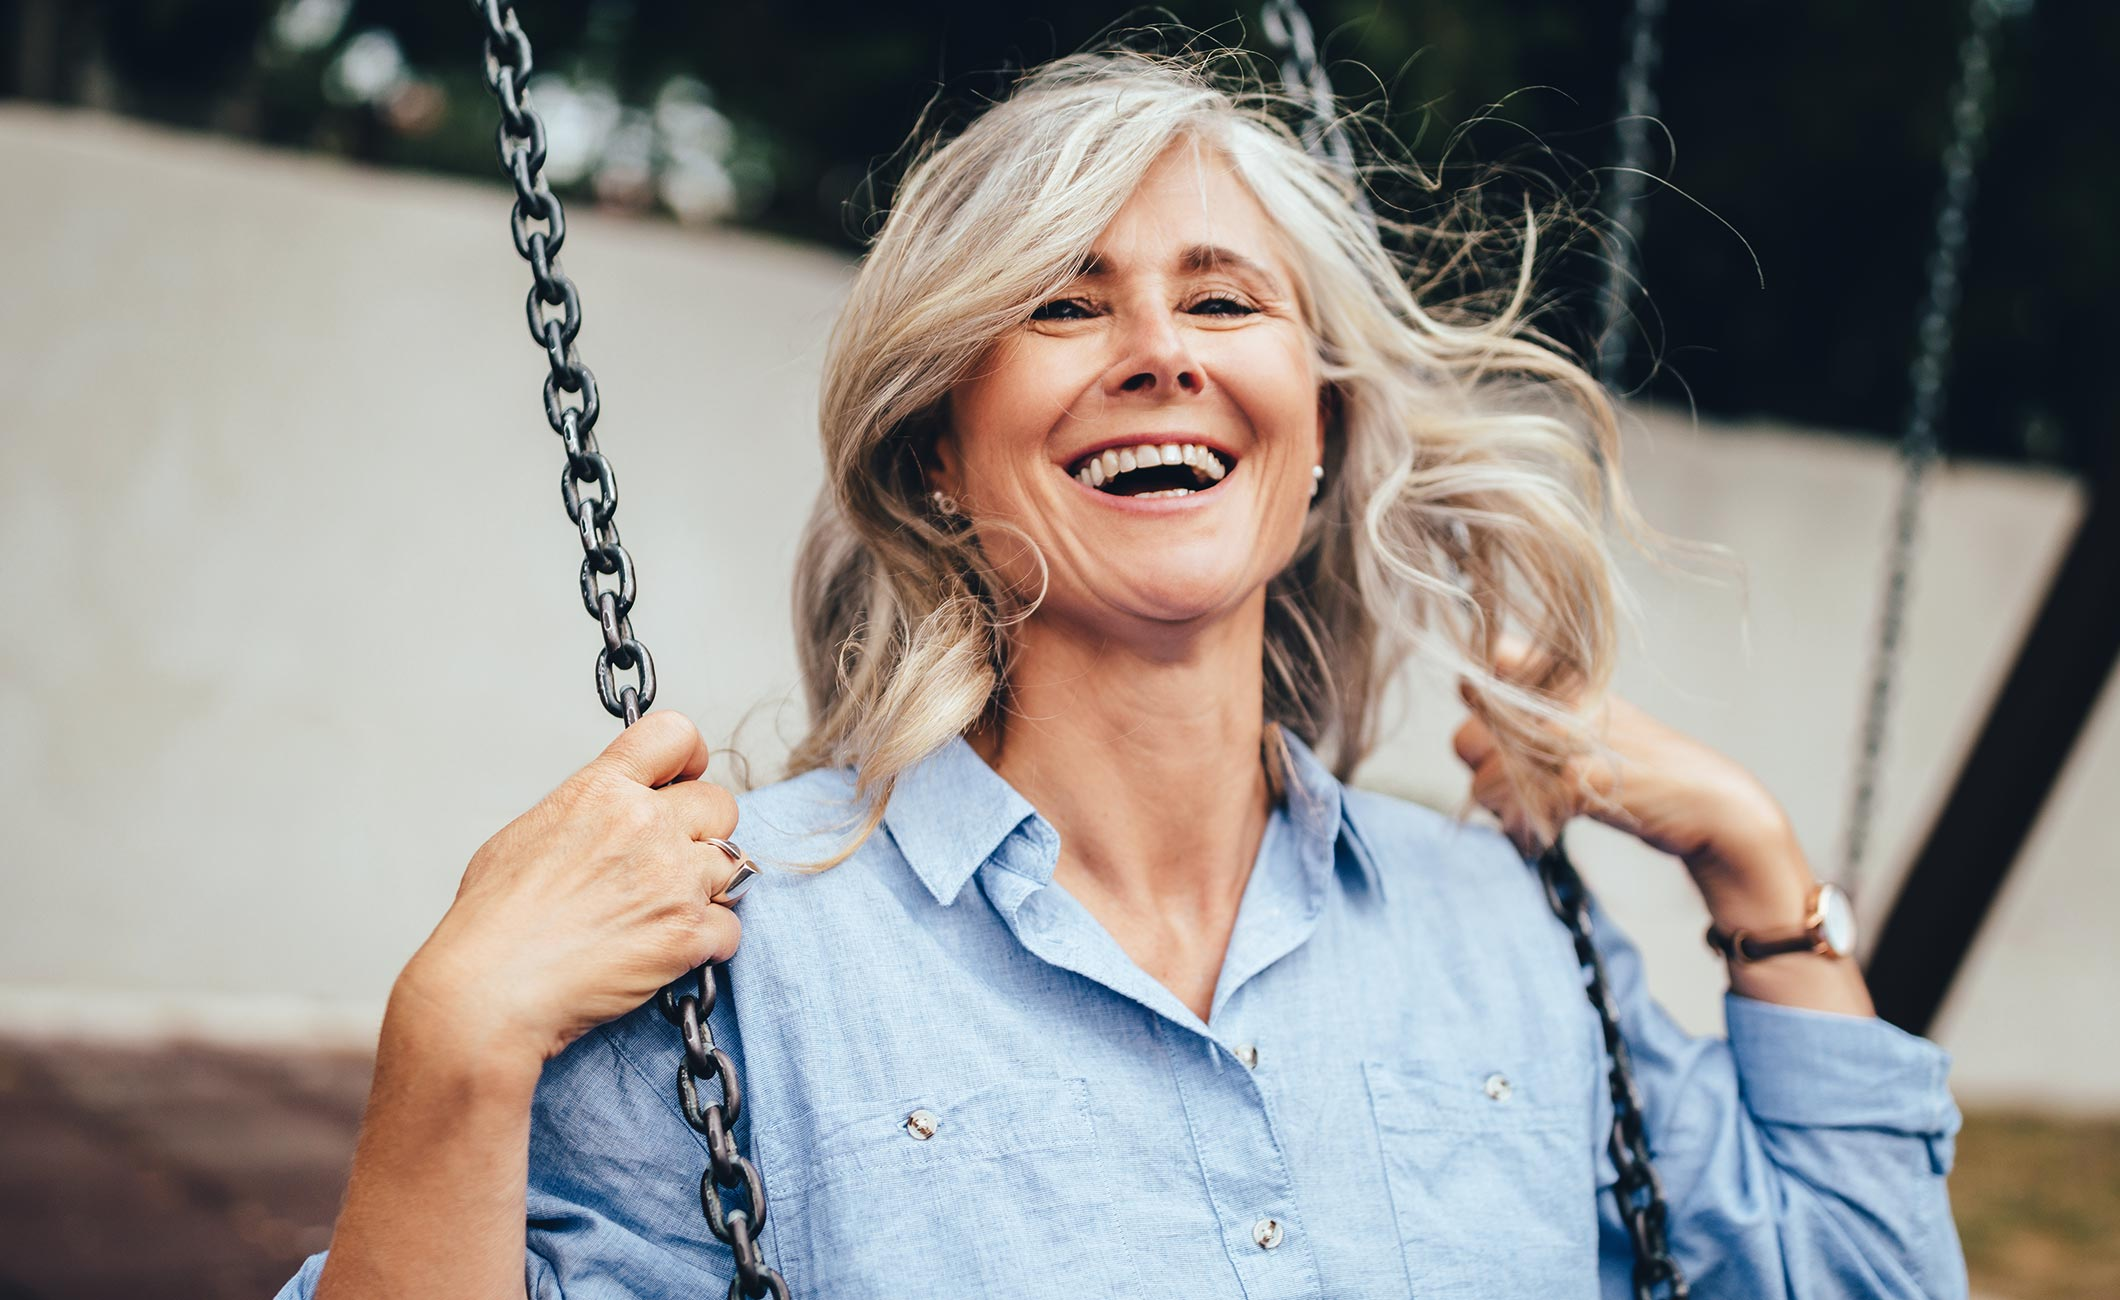 older woman swinging on a swing and smiling